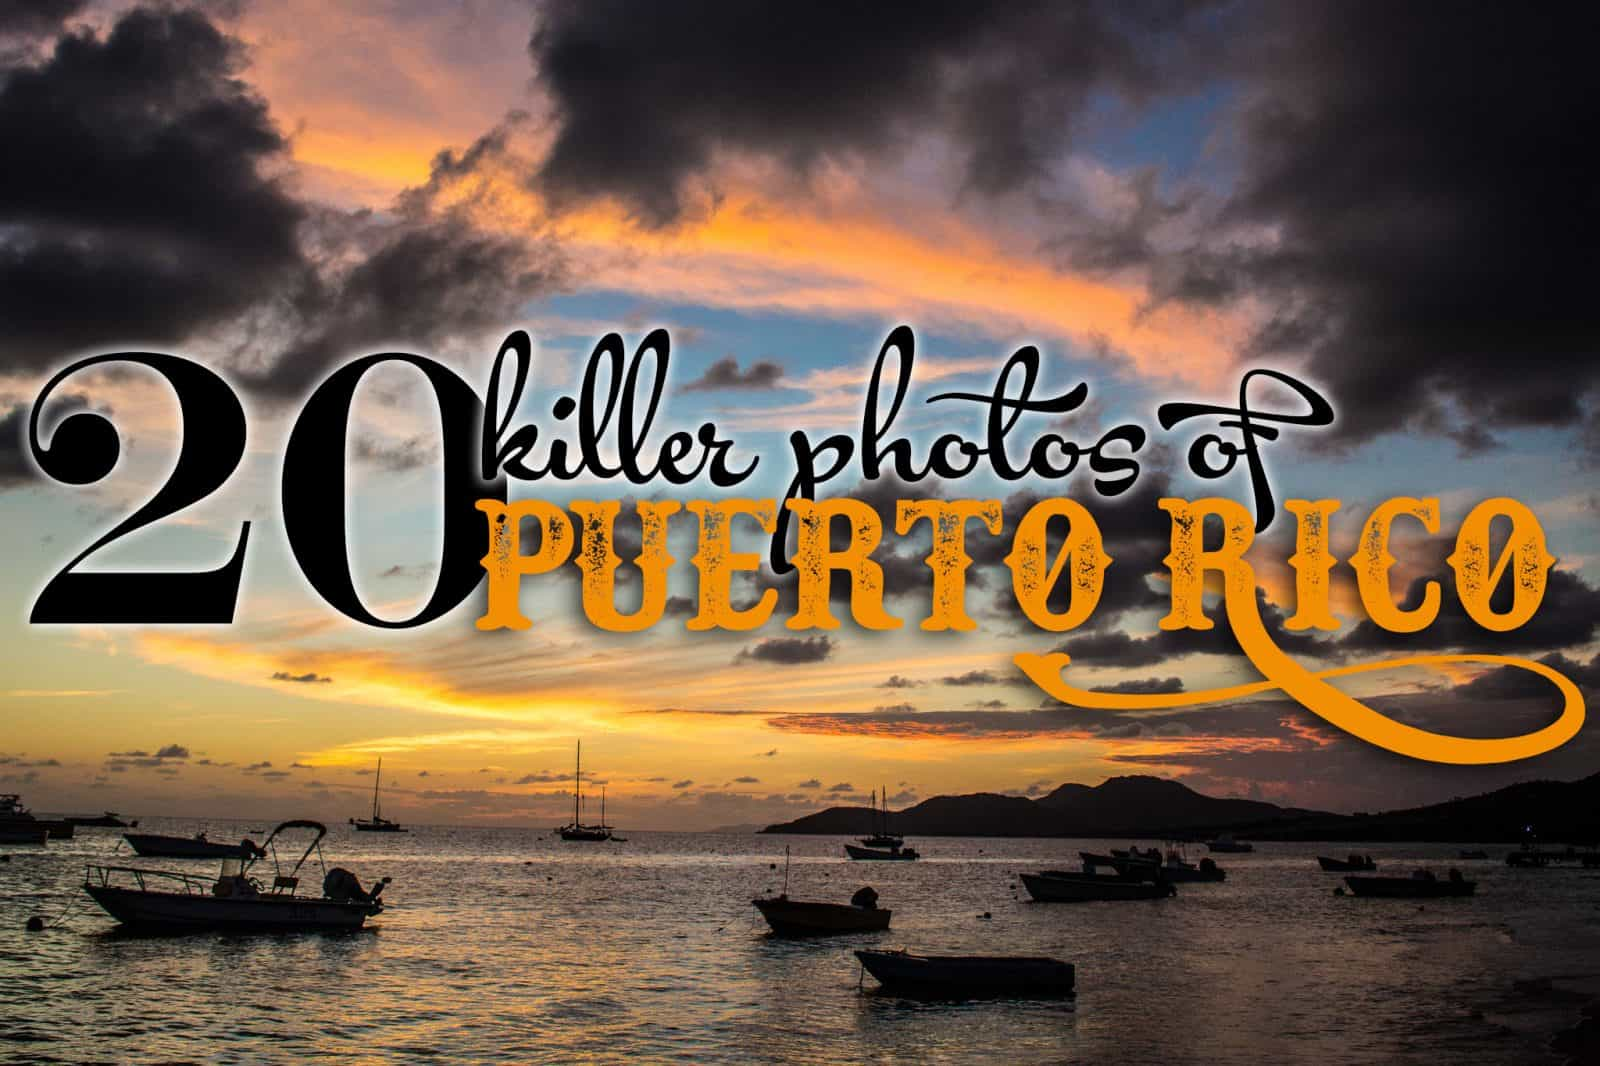 20 Killer Photos of Puerto Rico